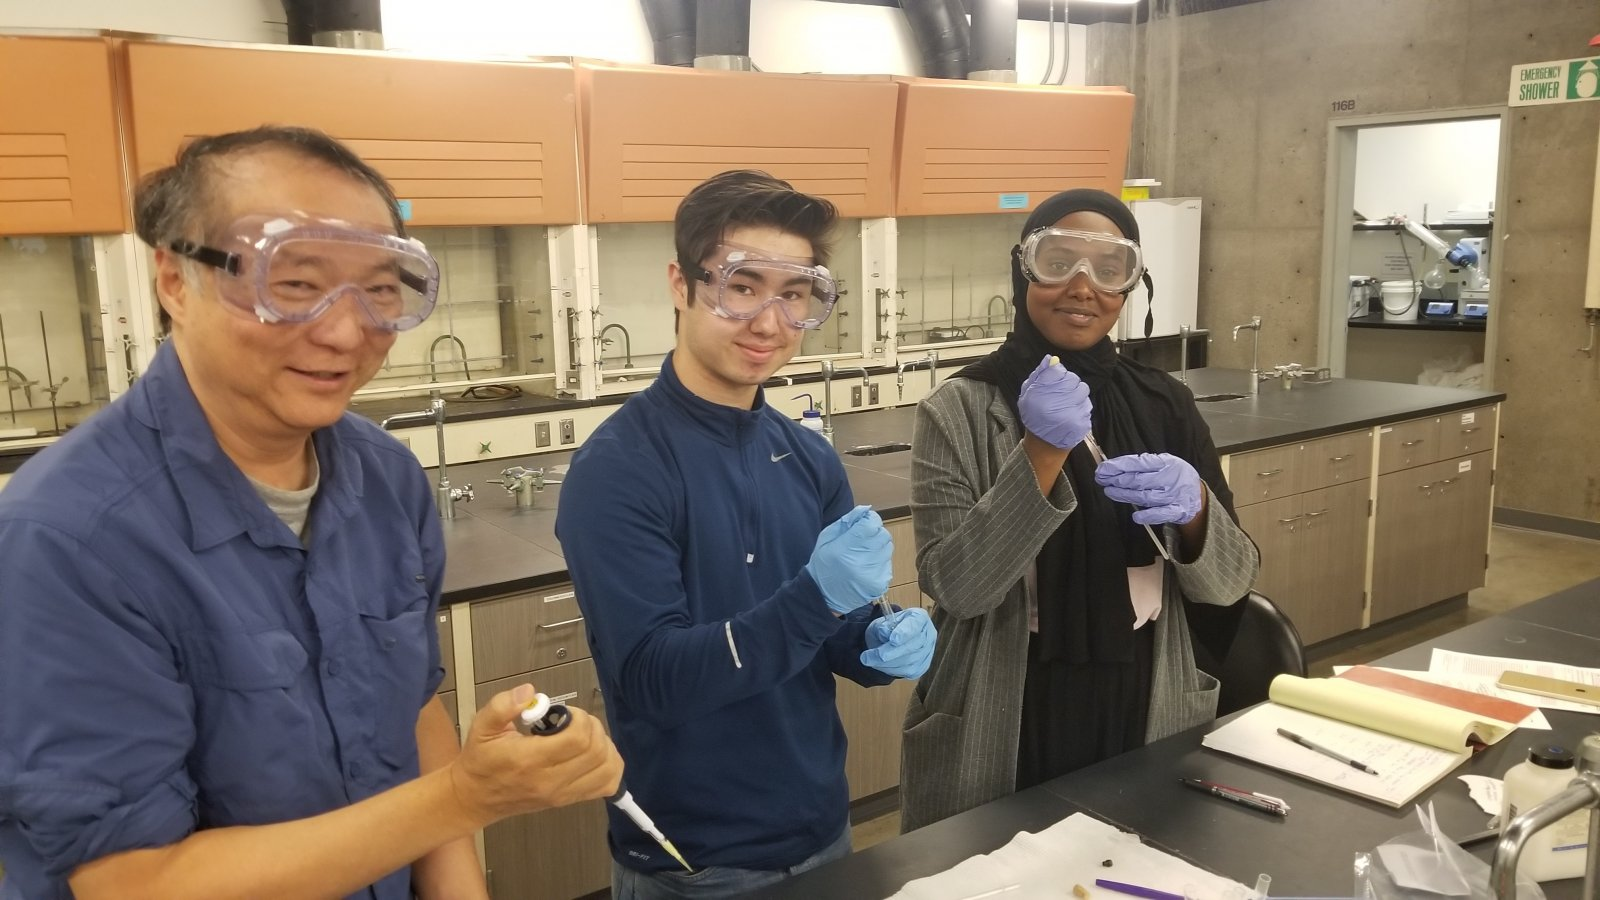 ASE intern working with their mentors in a lab